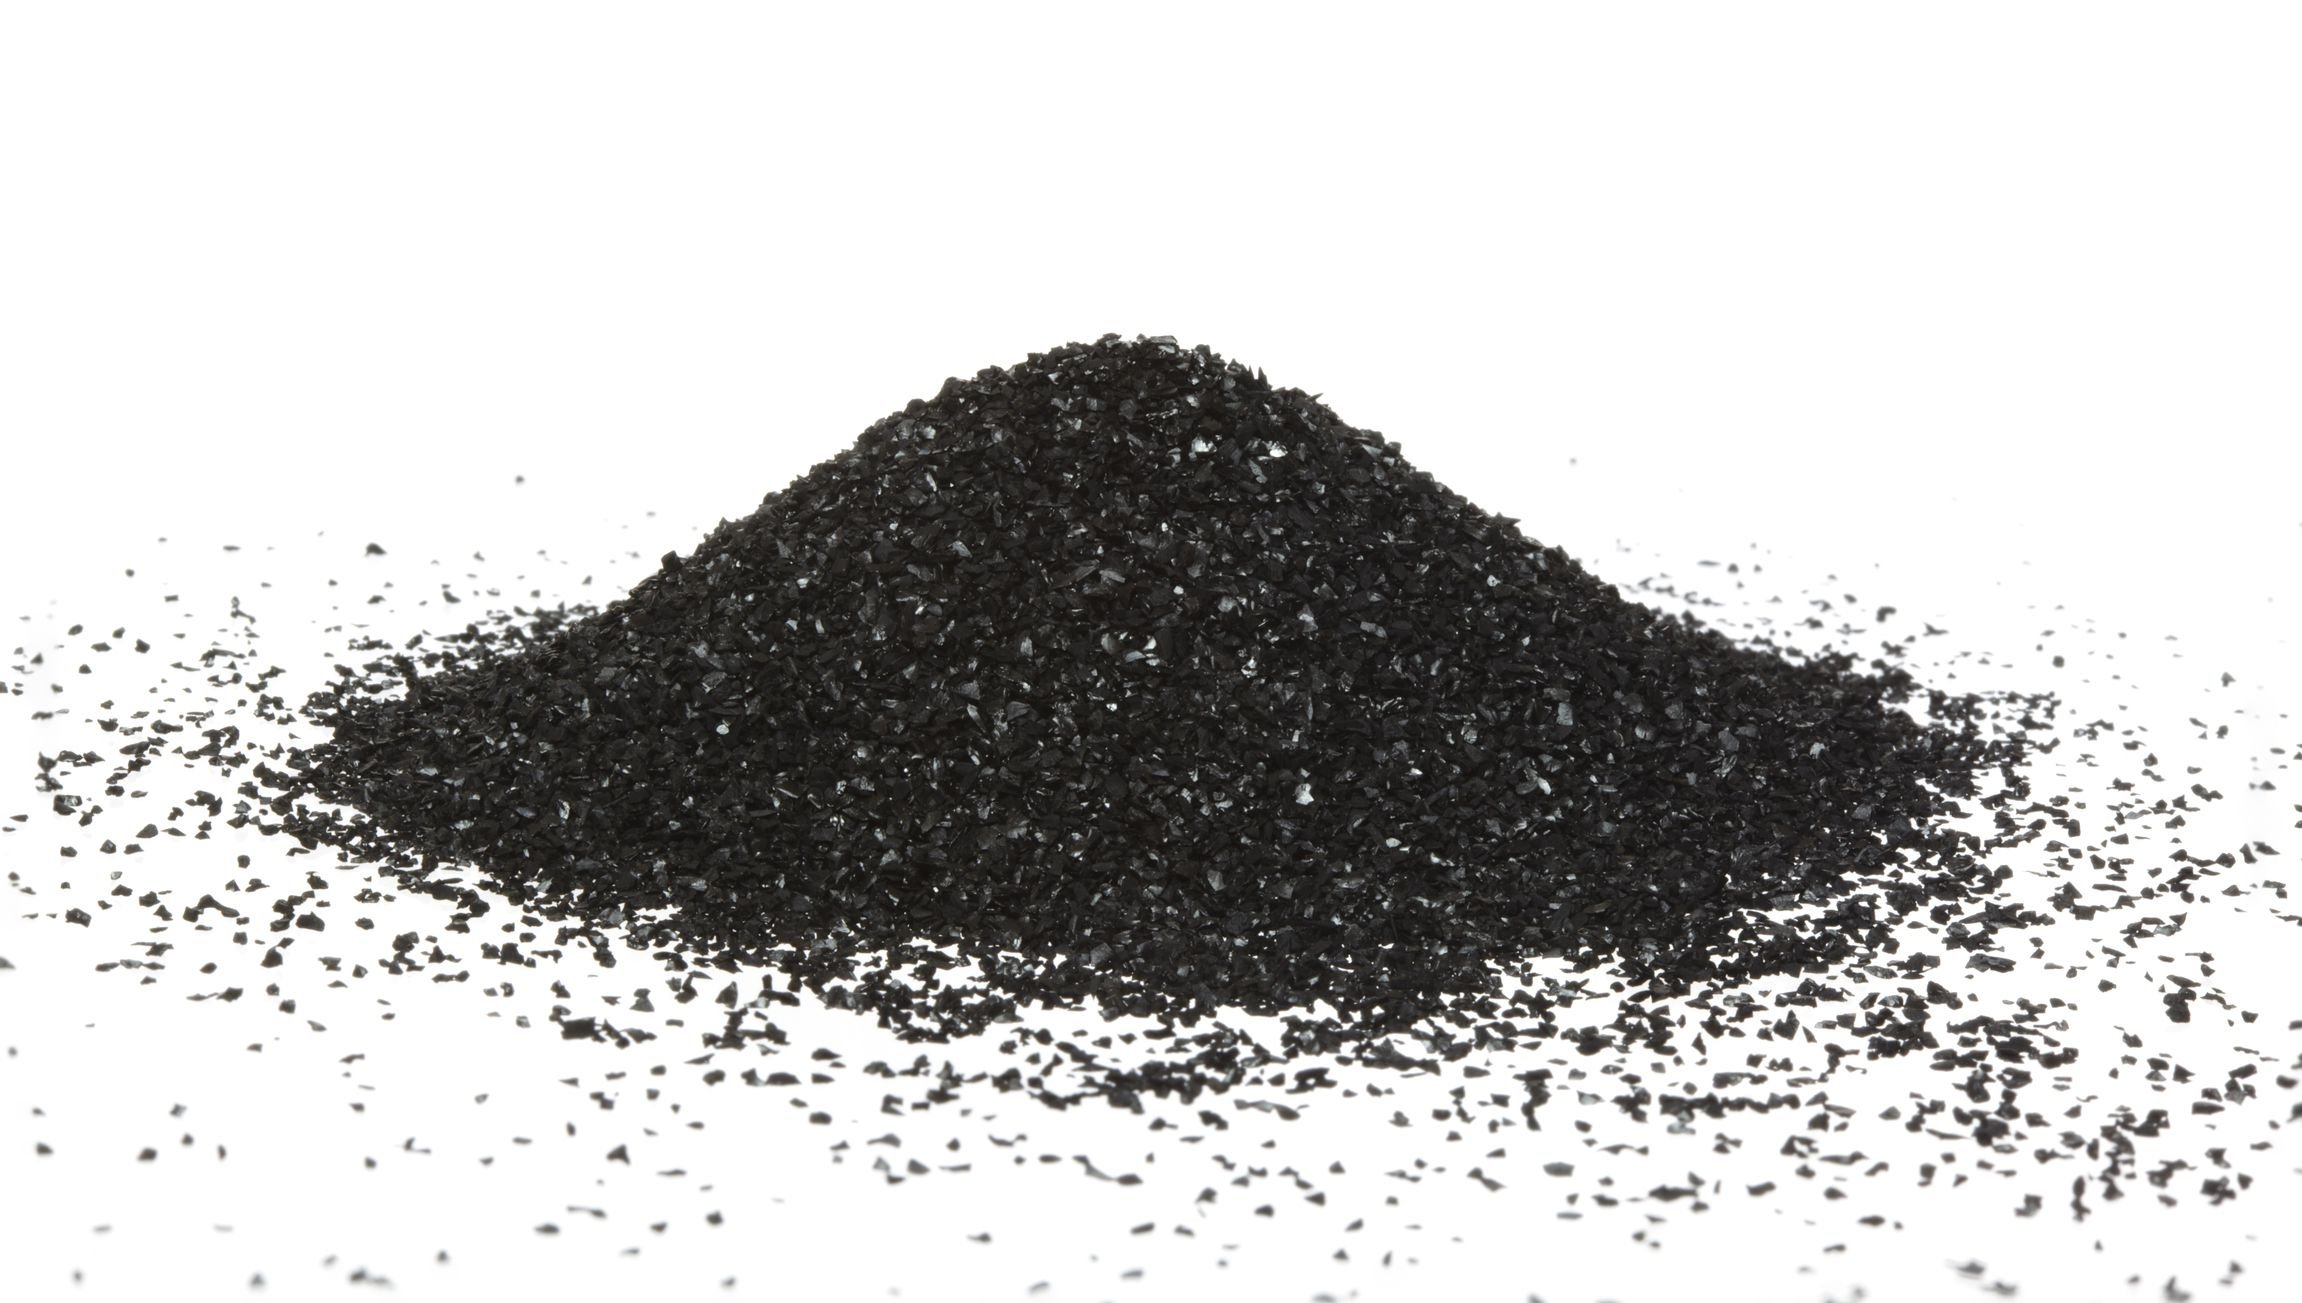 20 Lbs Bulk Coconut Shell Water Filter Granular Activated Carbon Charcoal by American Water Solutions